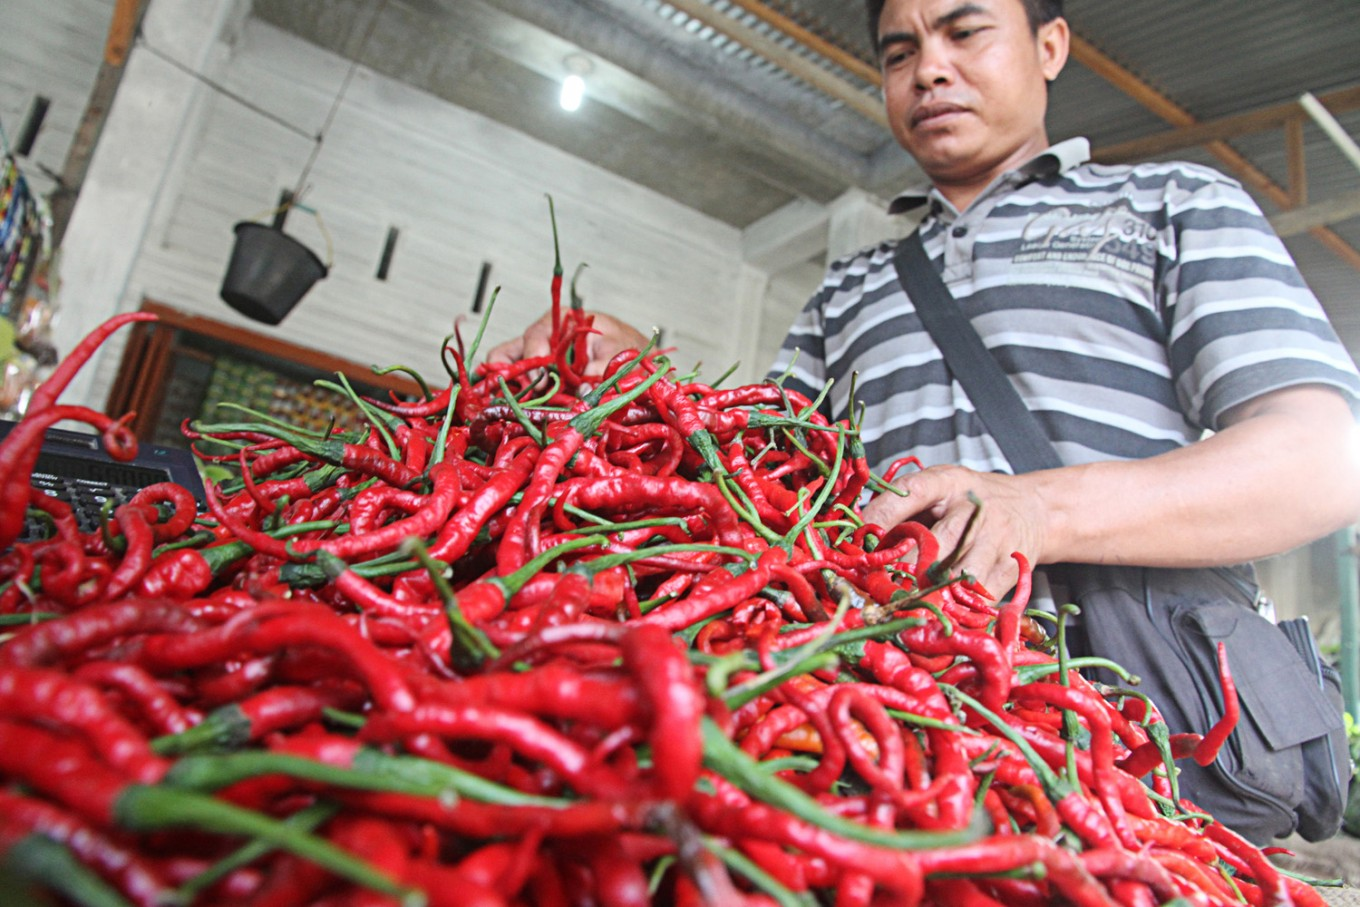 Govt ensures stable chili supply, price